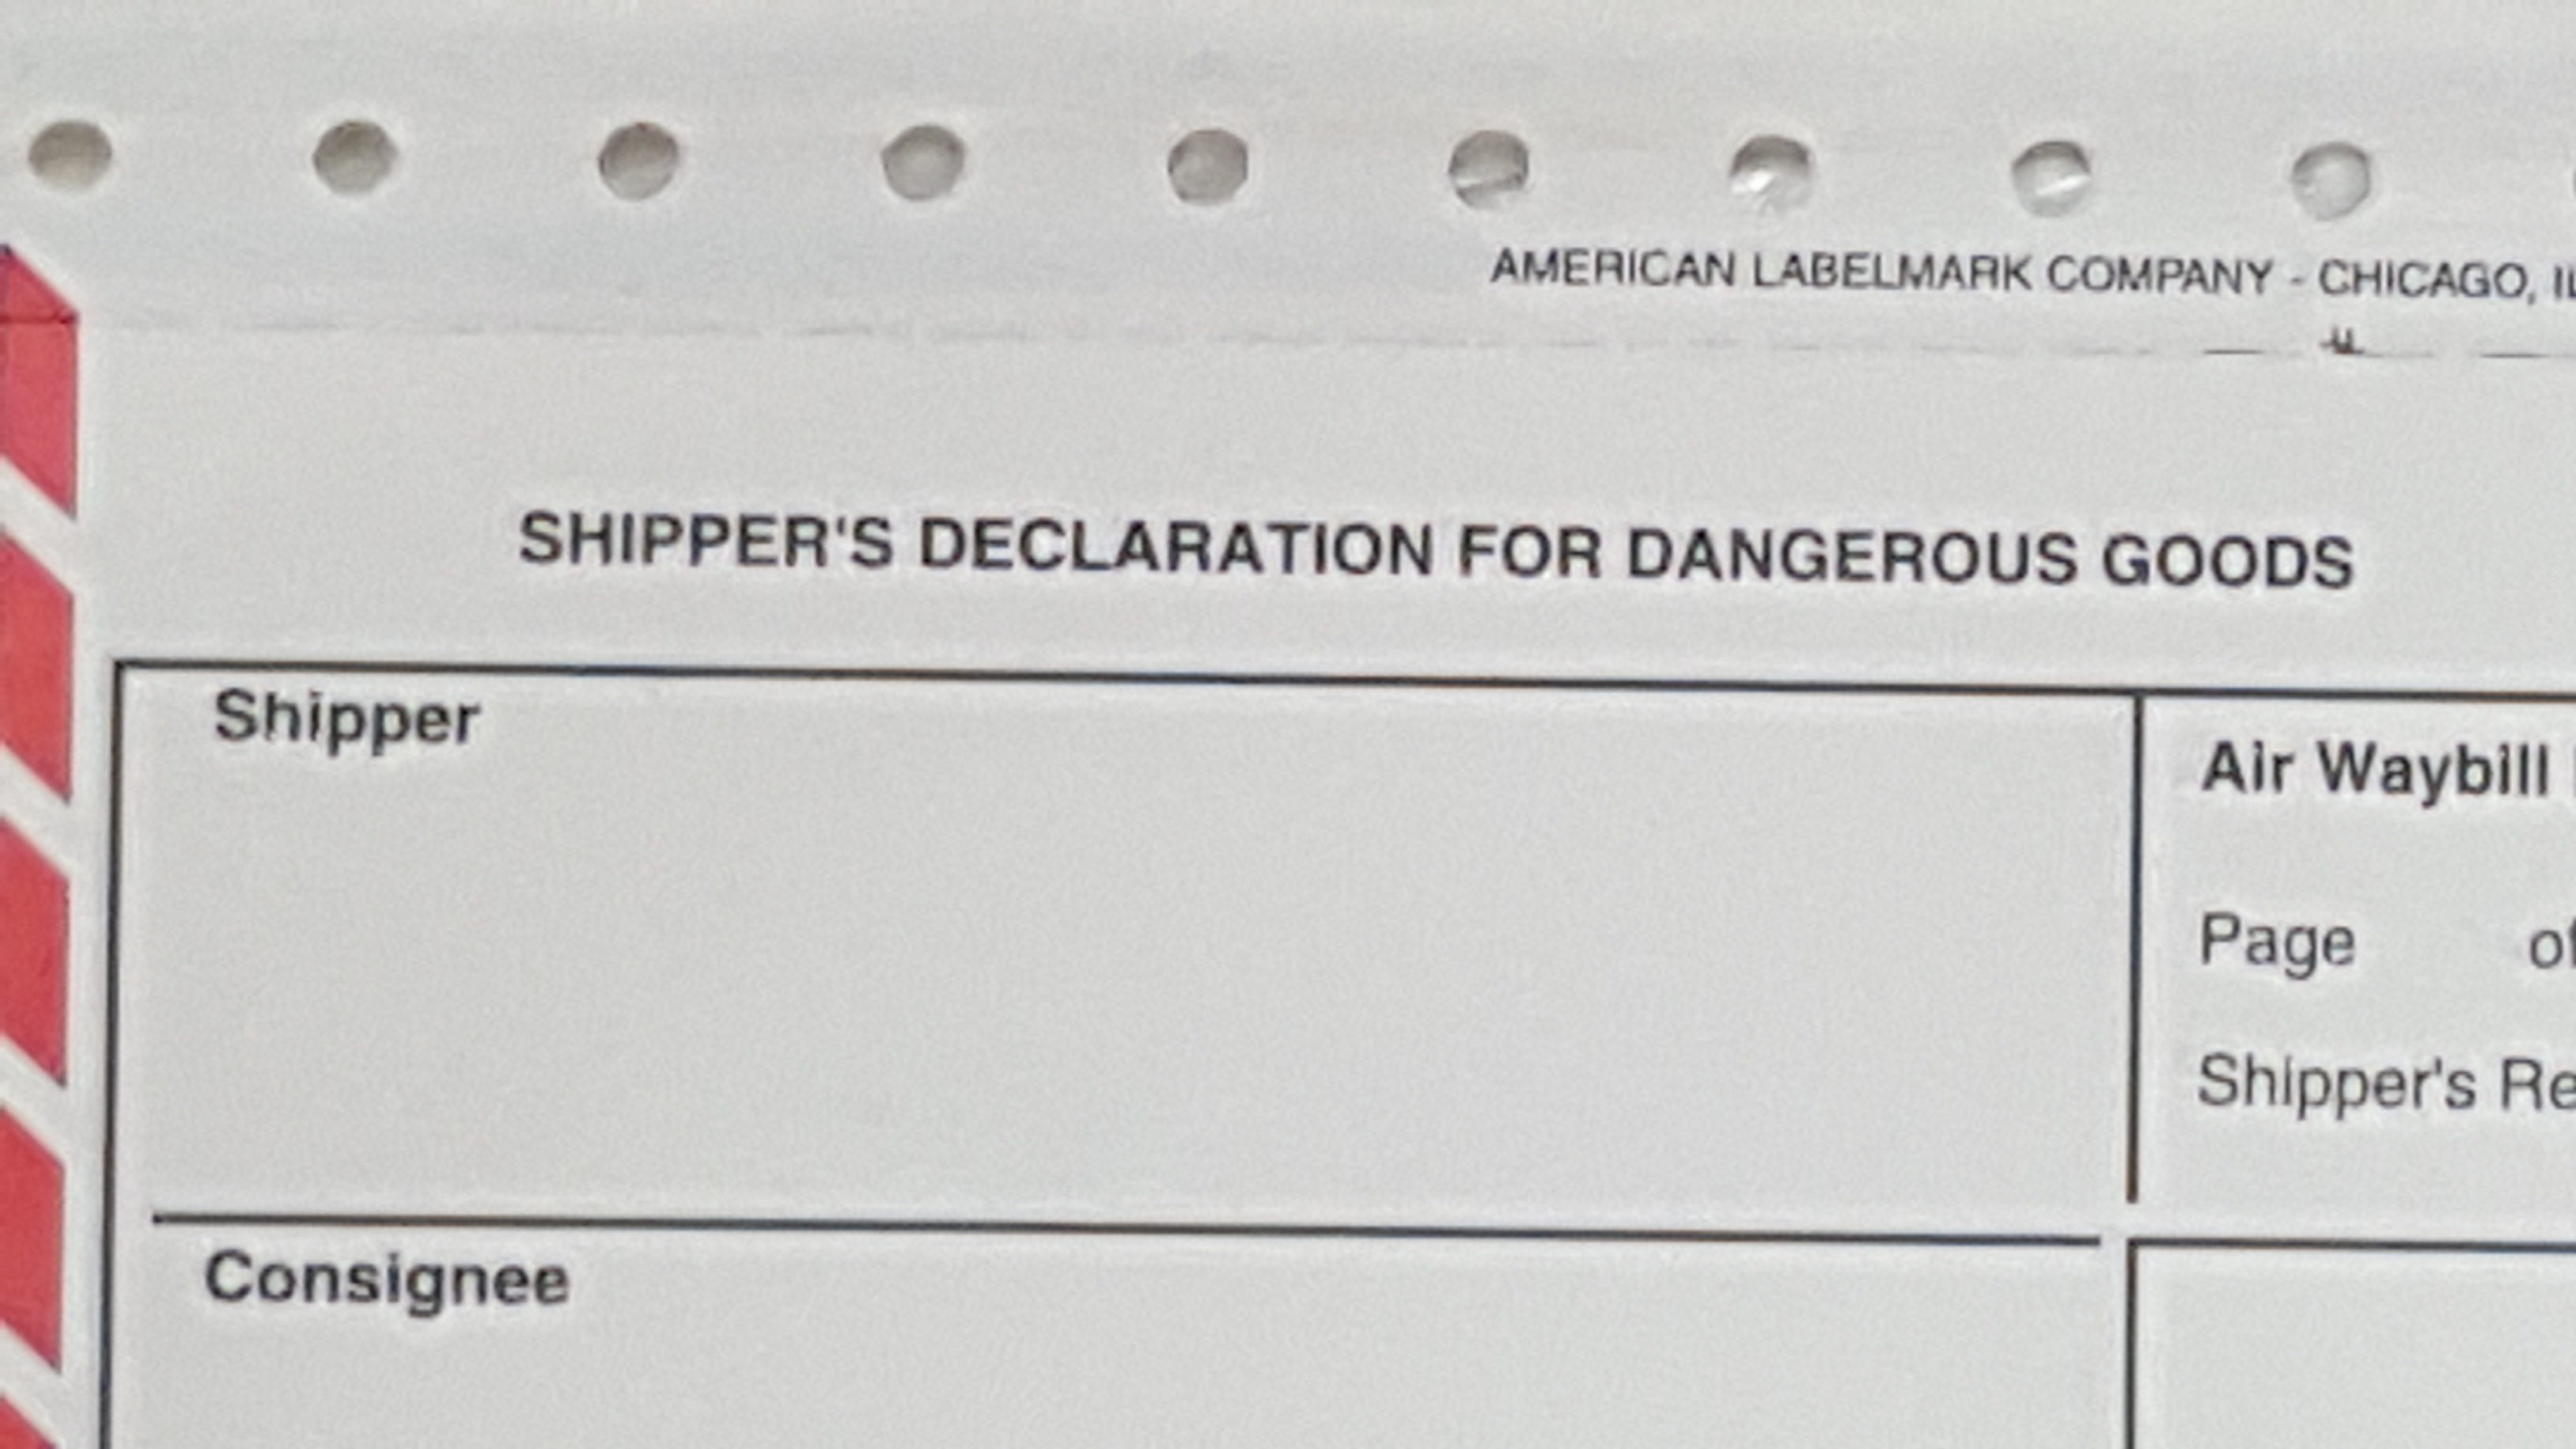 Shippers declaration for dangerous goods daniels training services title for iatas shippers declaration for dangerous goods thecheapjerseys Choice Image